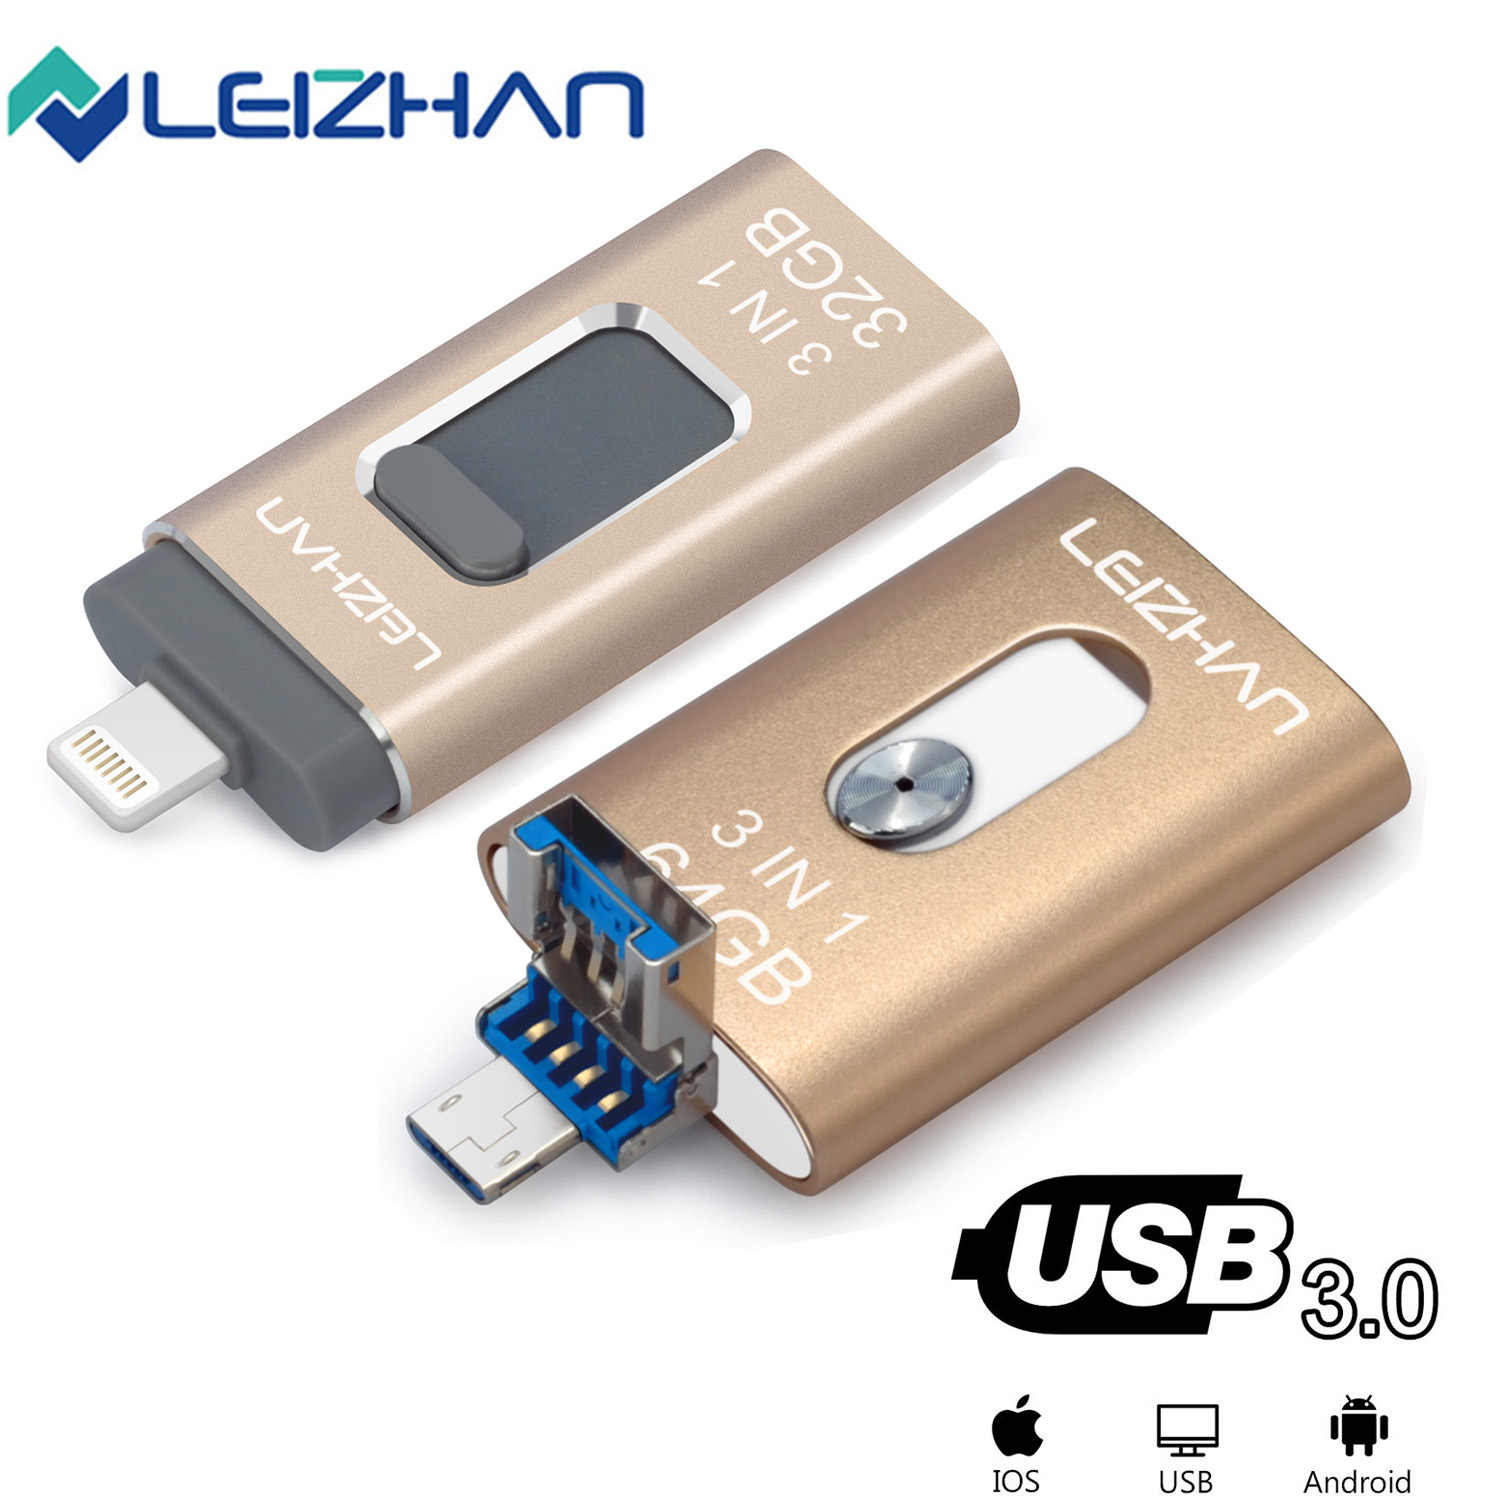 Leizhan Lightning Usb Flash Drive Voor Iphone Ipad Micro Android Telefoon Photostick Mobiele 128 Gb 64 Gb 32 Gb 16 gb Pendrive Usb 3.0